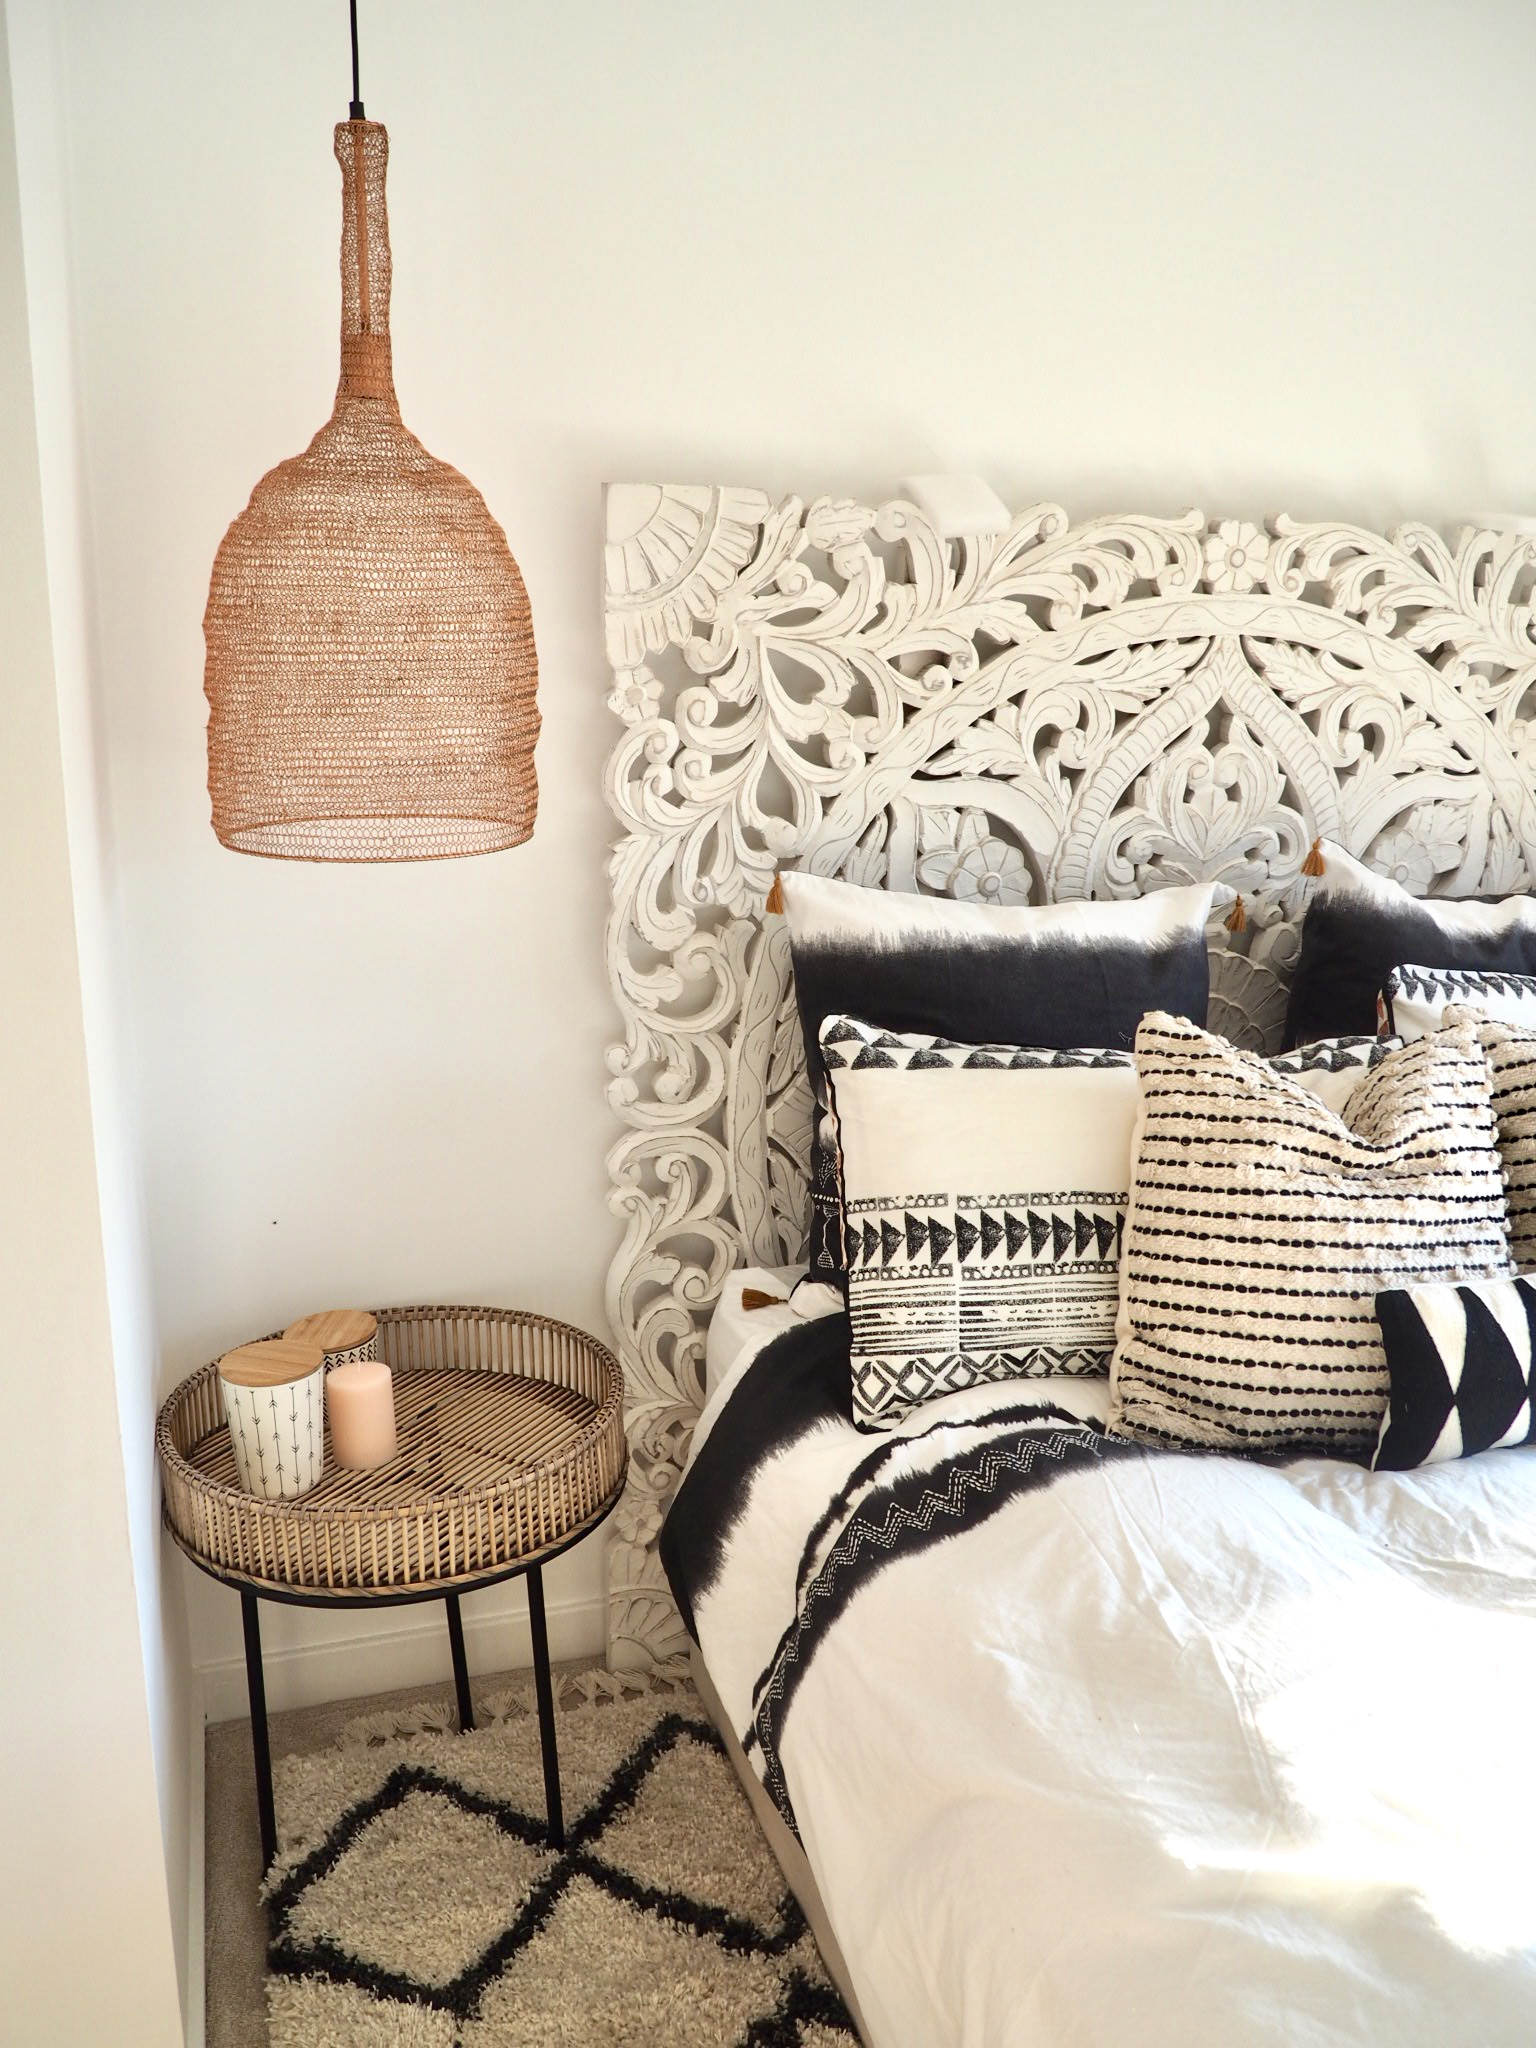 Bedding from La Redoute next to copper mesh pendant lights